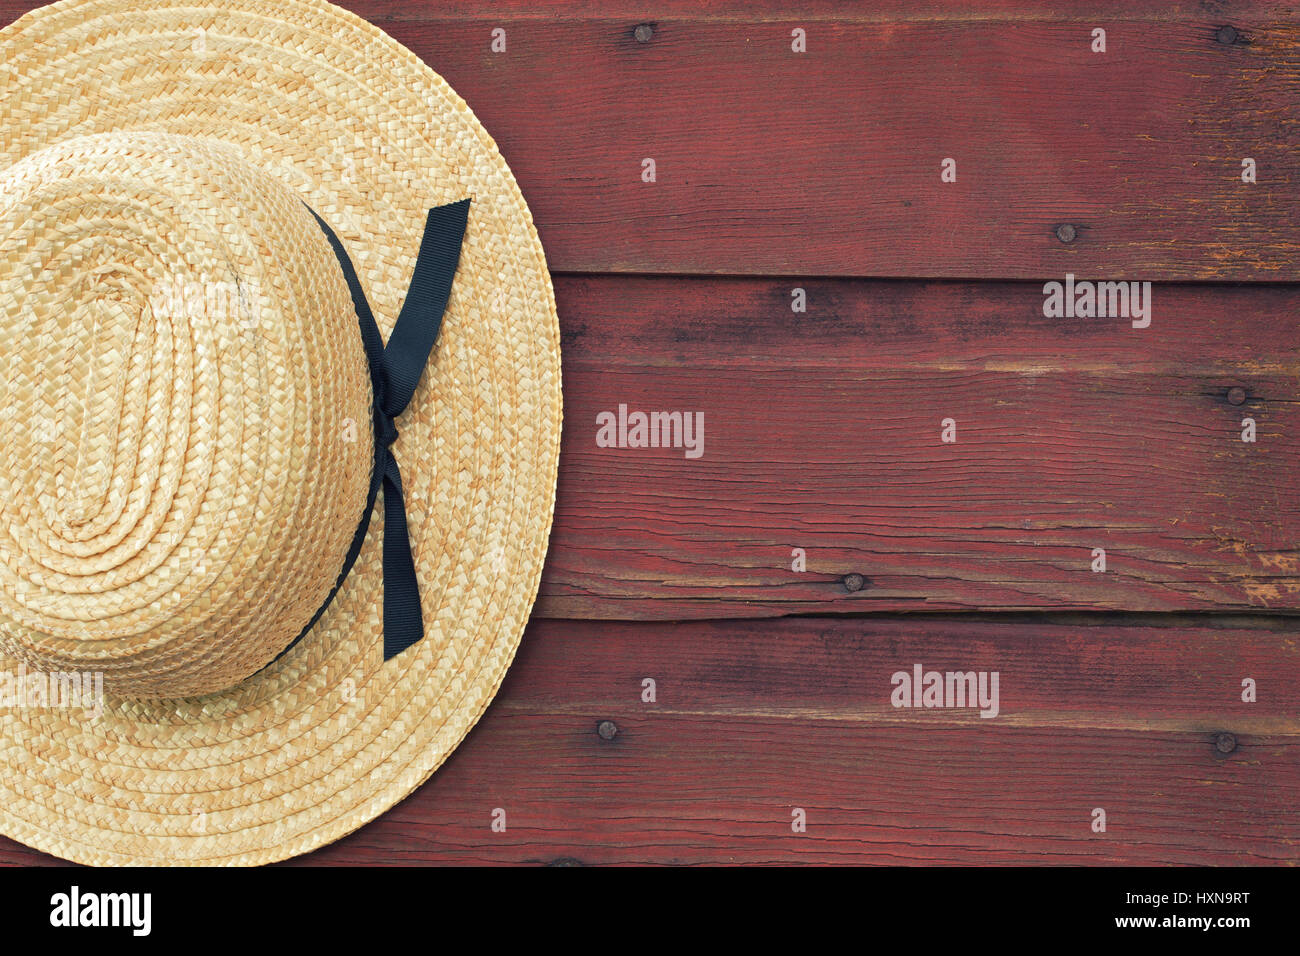 9e39de88 An Amish man's straw hat hangs on a red, wooden barn door - Stock Image